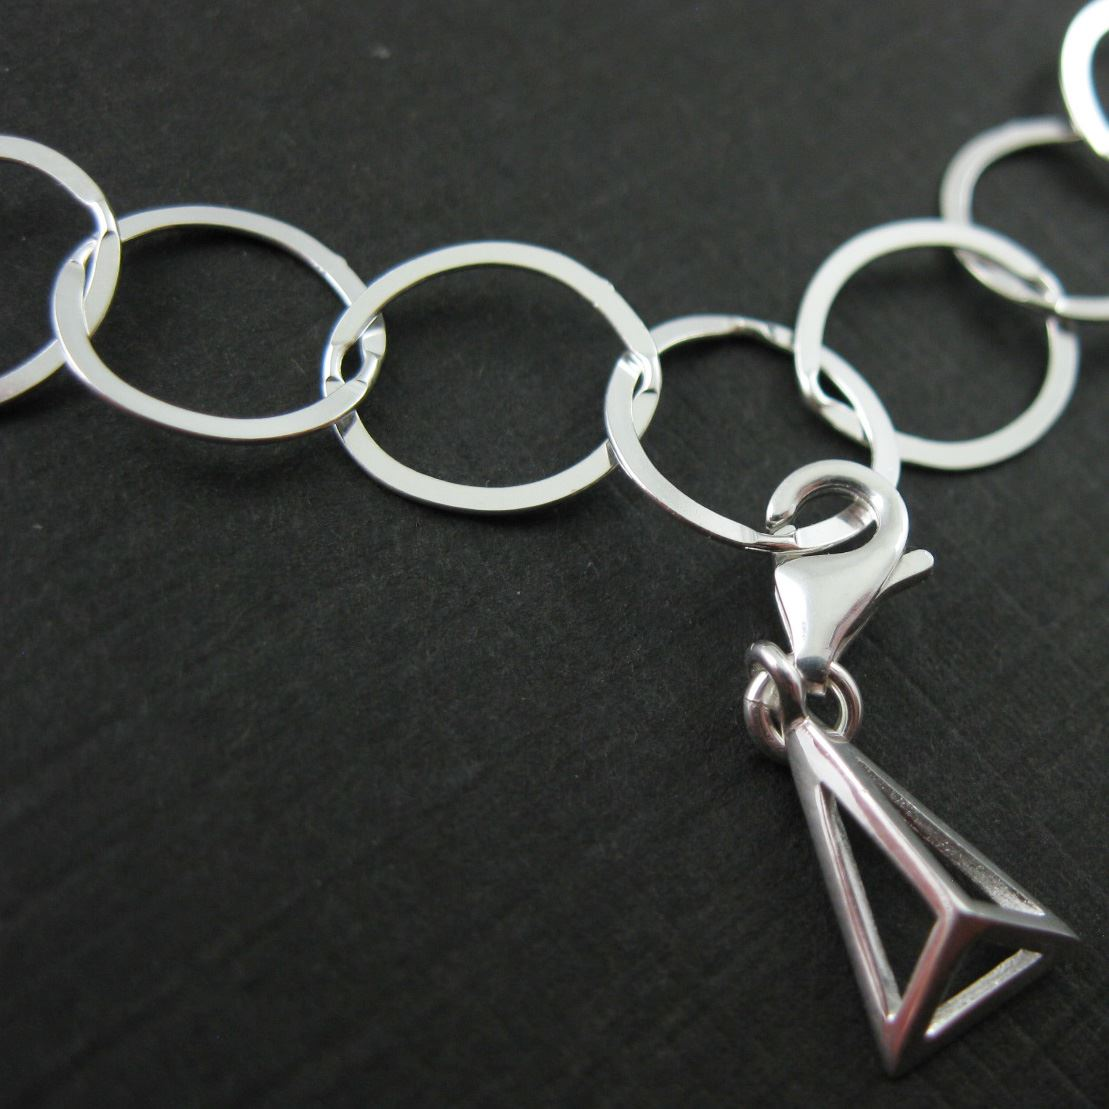 Sterling Silver Hollow Pyramid Charm - Charm with Clasp - Charm Bracelet Charm- Add on Charm